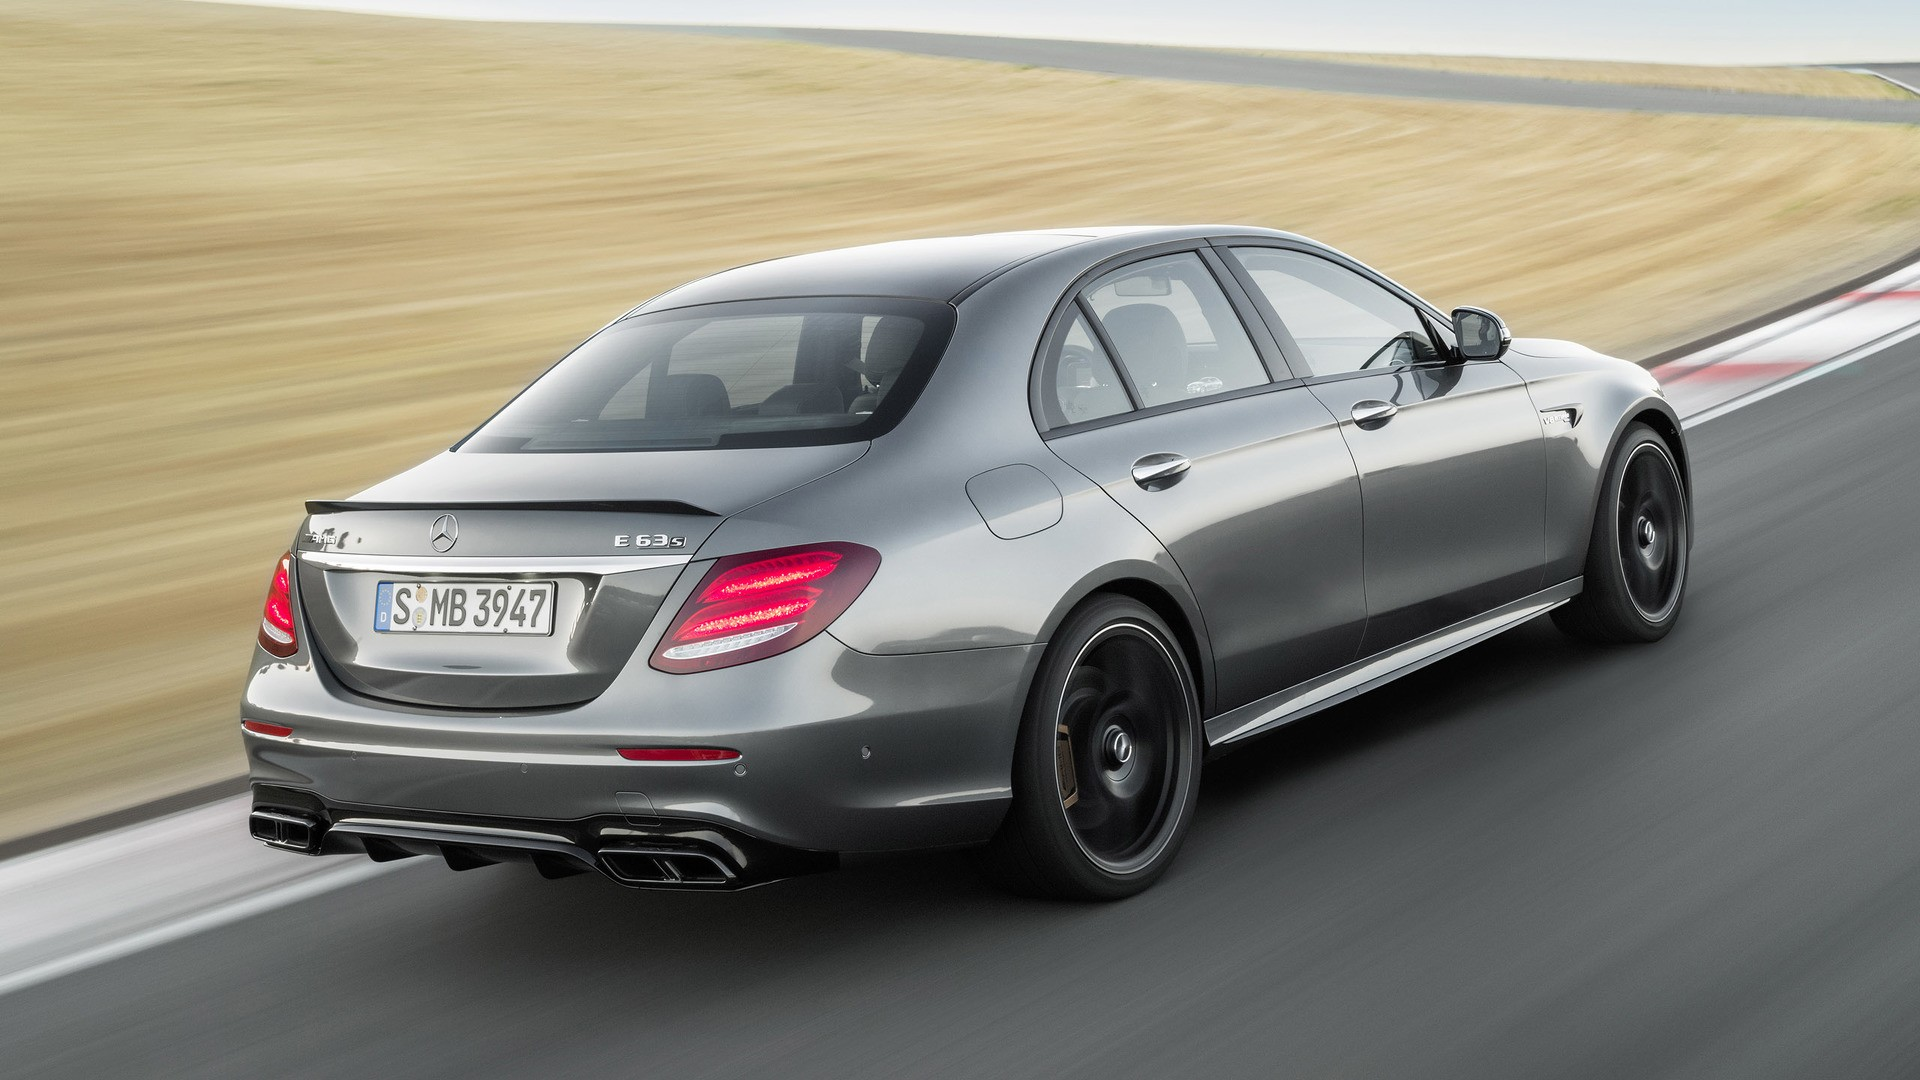 mercedes benz uk prices e63 4matic sedan from gbp 78 935. Black Bedroom Furniture Sets. Home Design Ideas